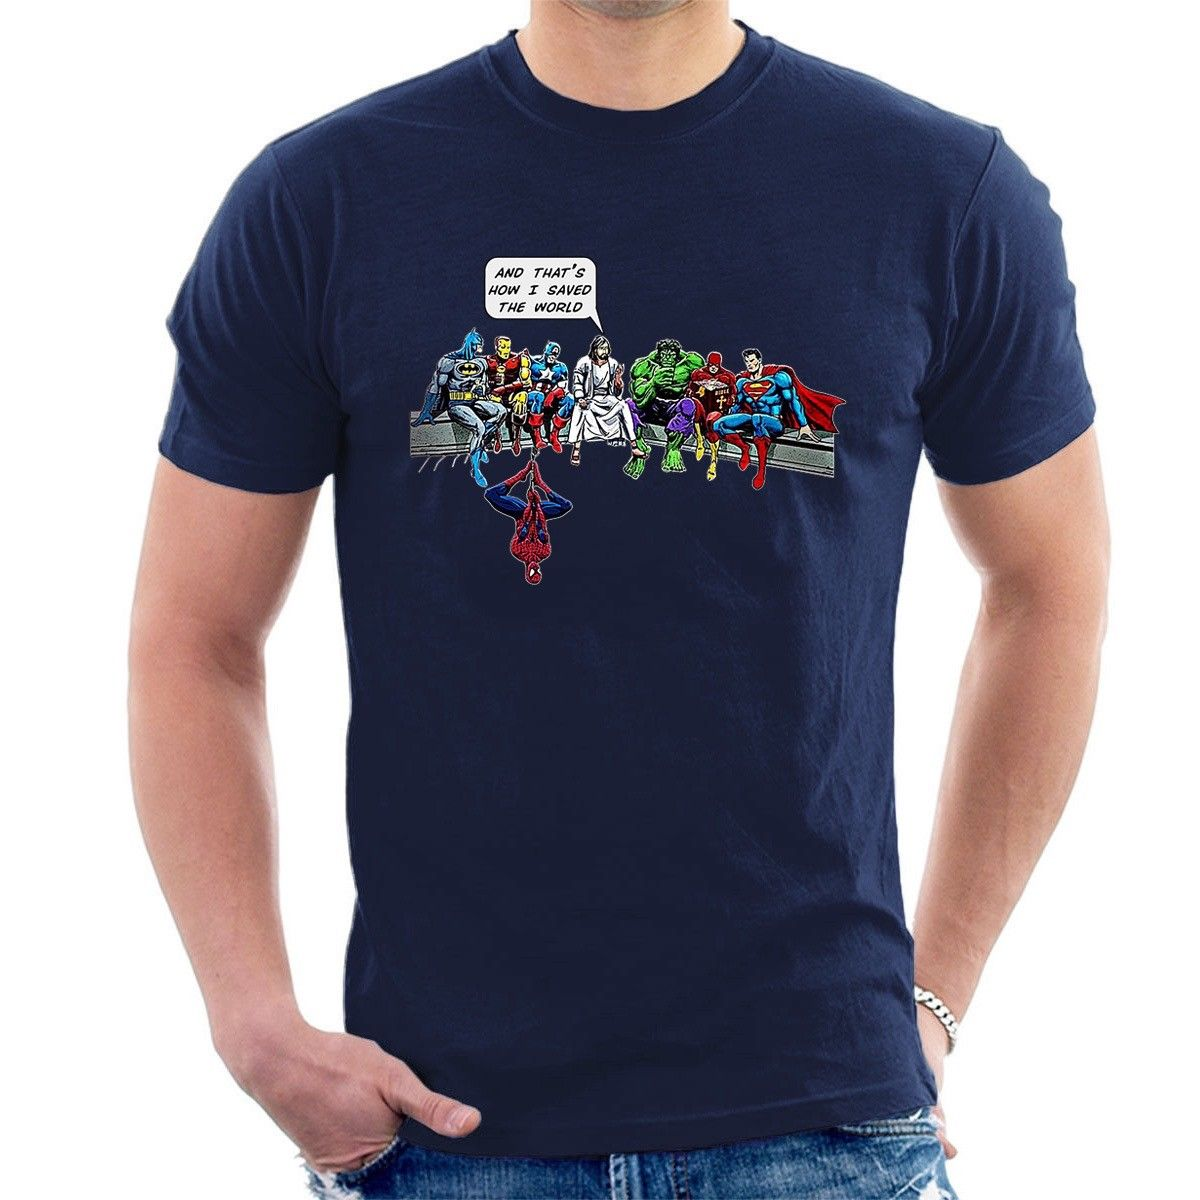 AND THAT S HOW I SAVED THE WORLD T-SHIRT Jesus men heroes funny inspired B05 New T Shirts Funny Tops Tee free shipping